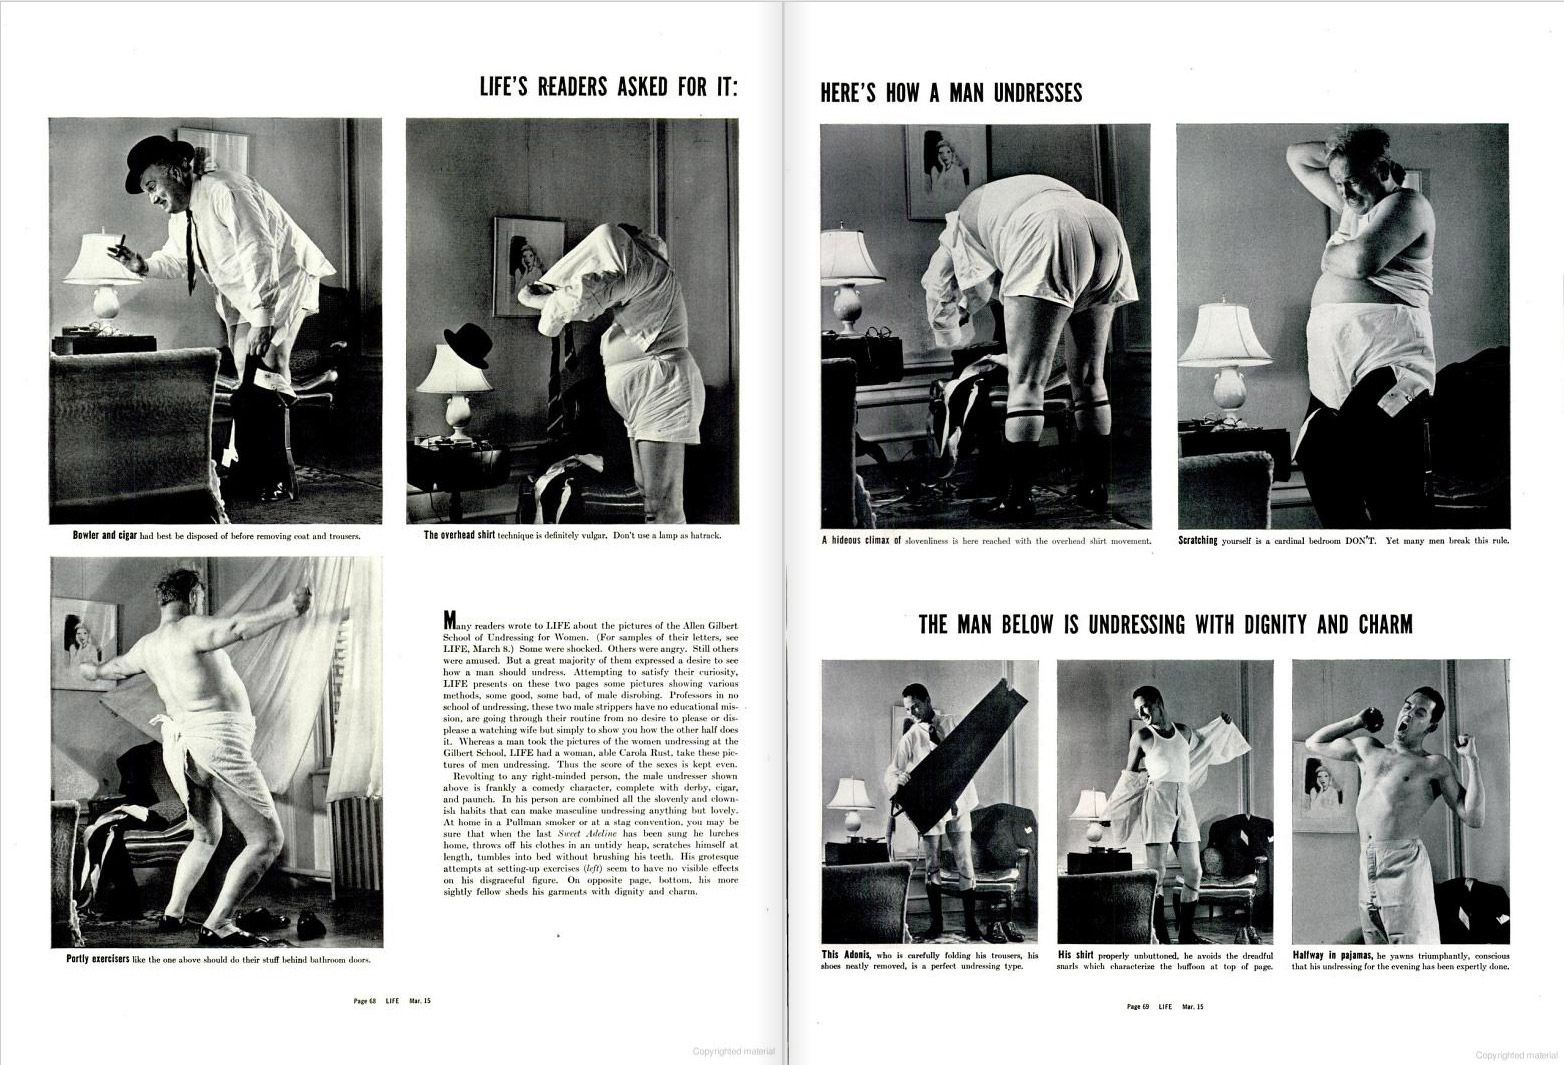 From the March 15, 1937 issue of LIFE magazine. Photos by Carola Rust.